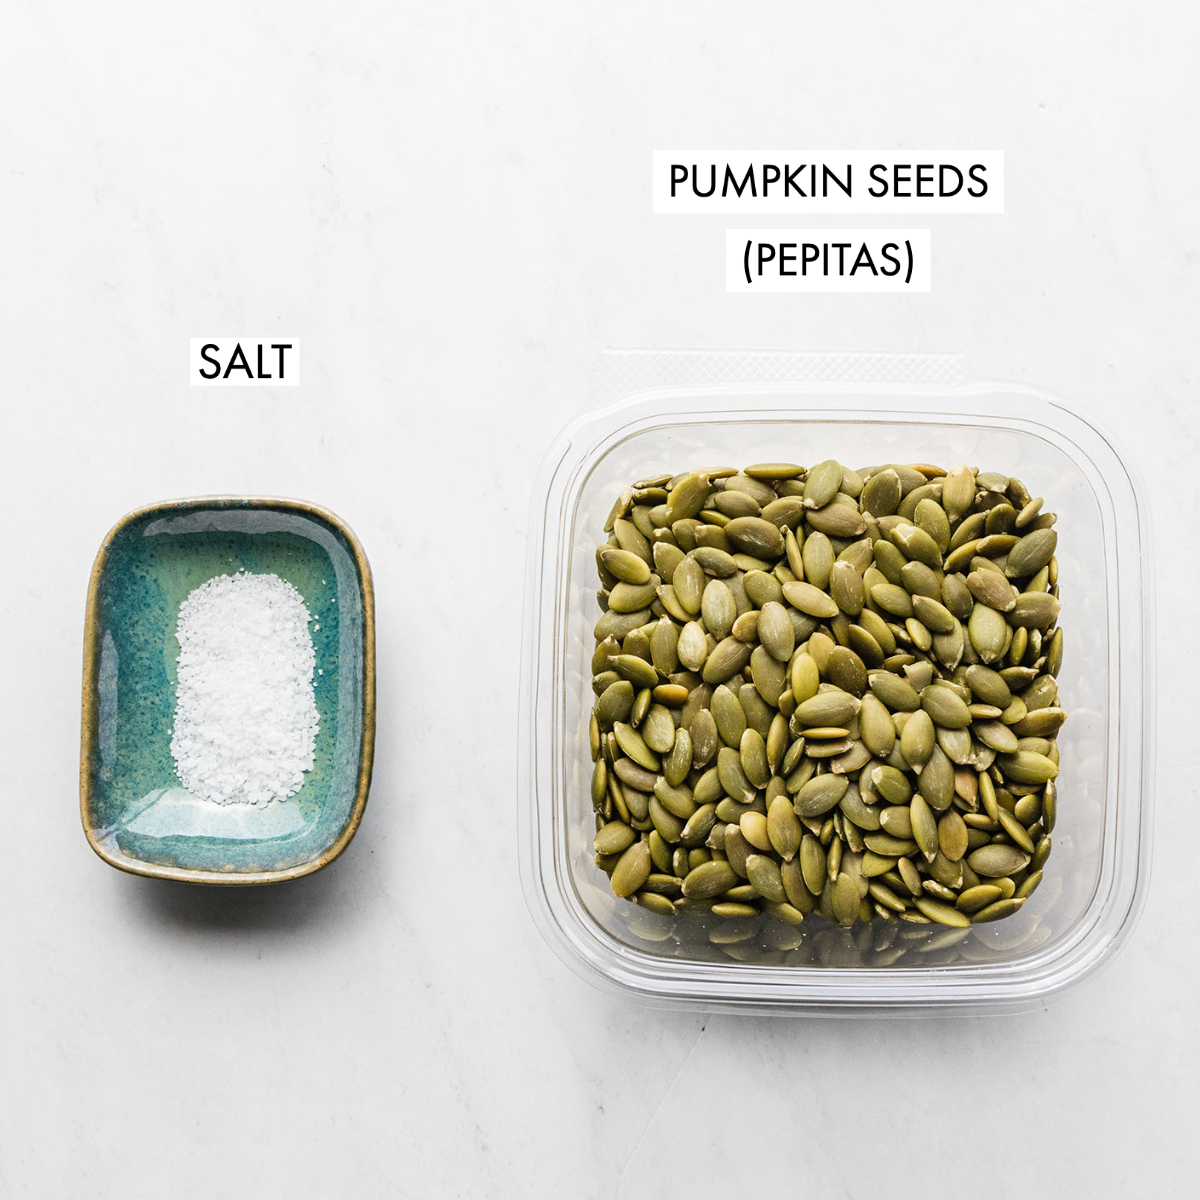 ingredients for pumpkin seed butter including pepitas and sald